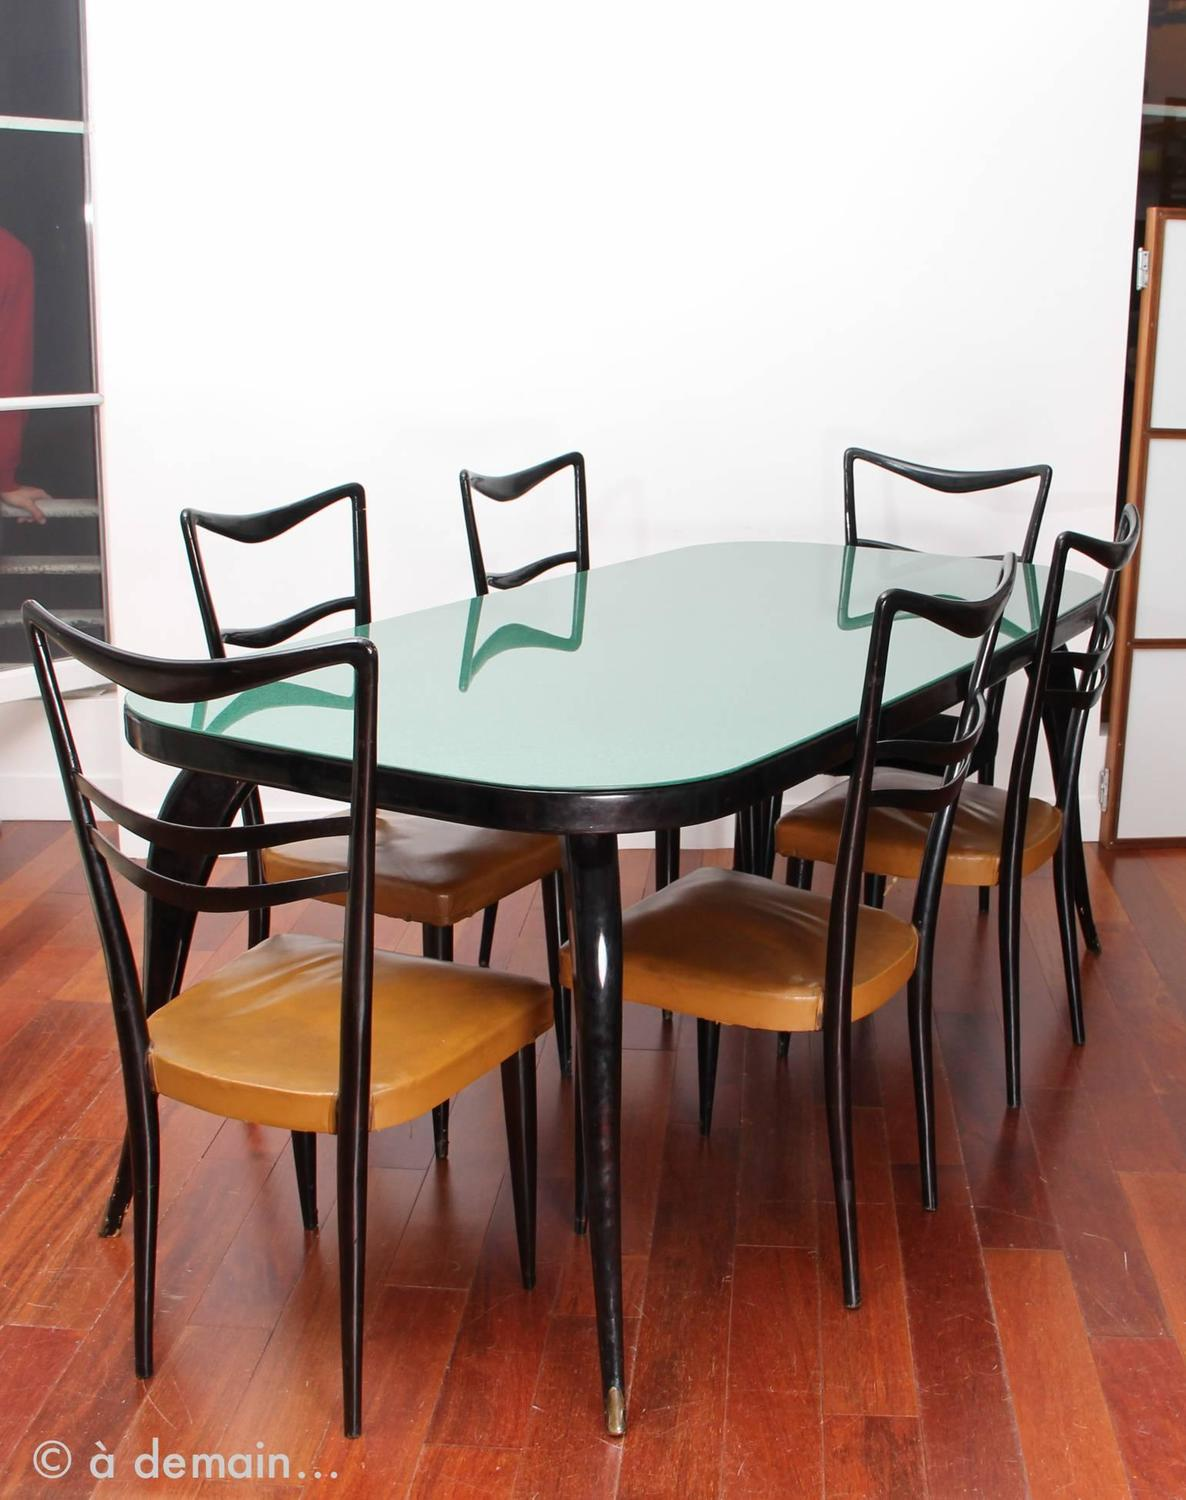 beautiful italian dining room set in the style of paolo buffa from the